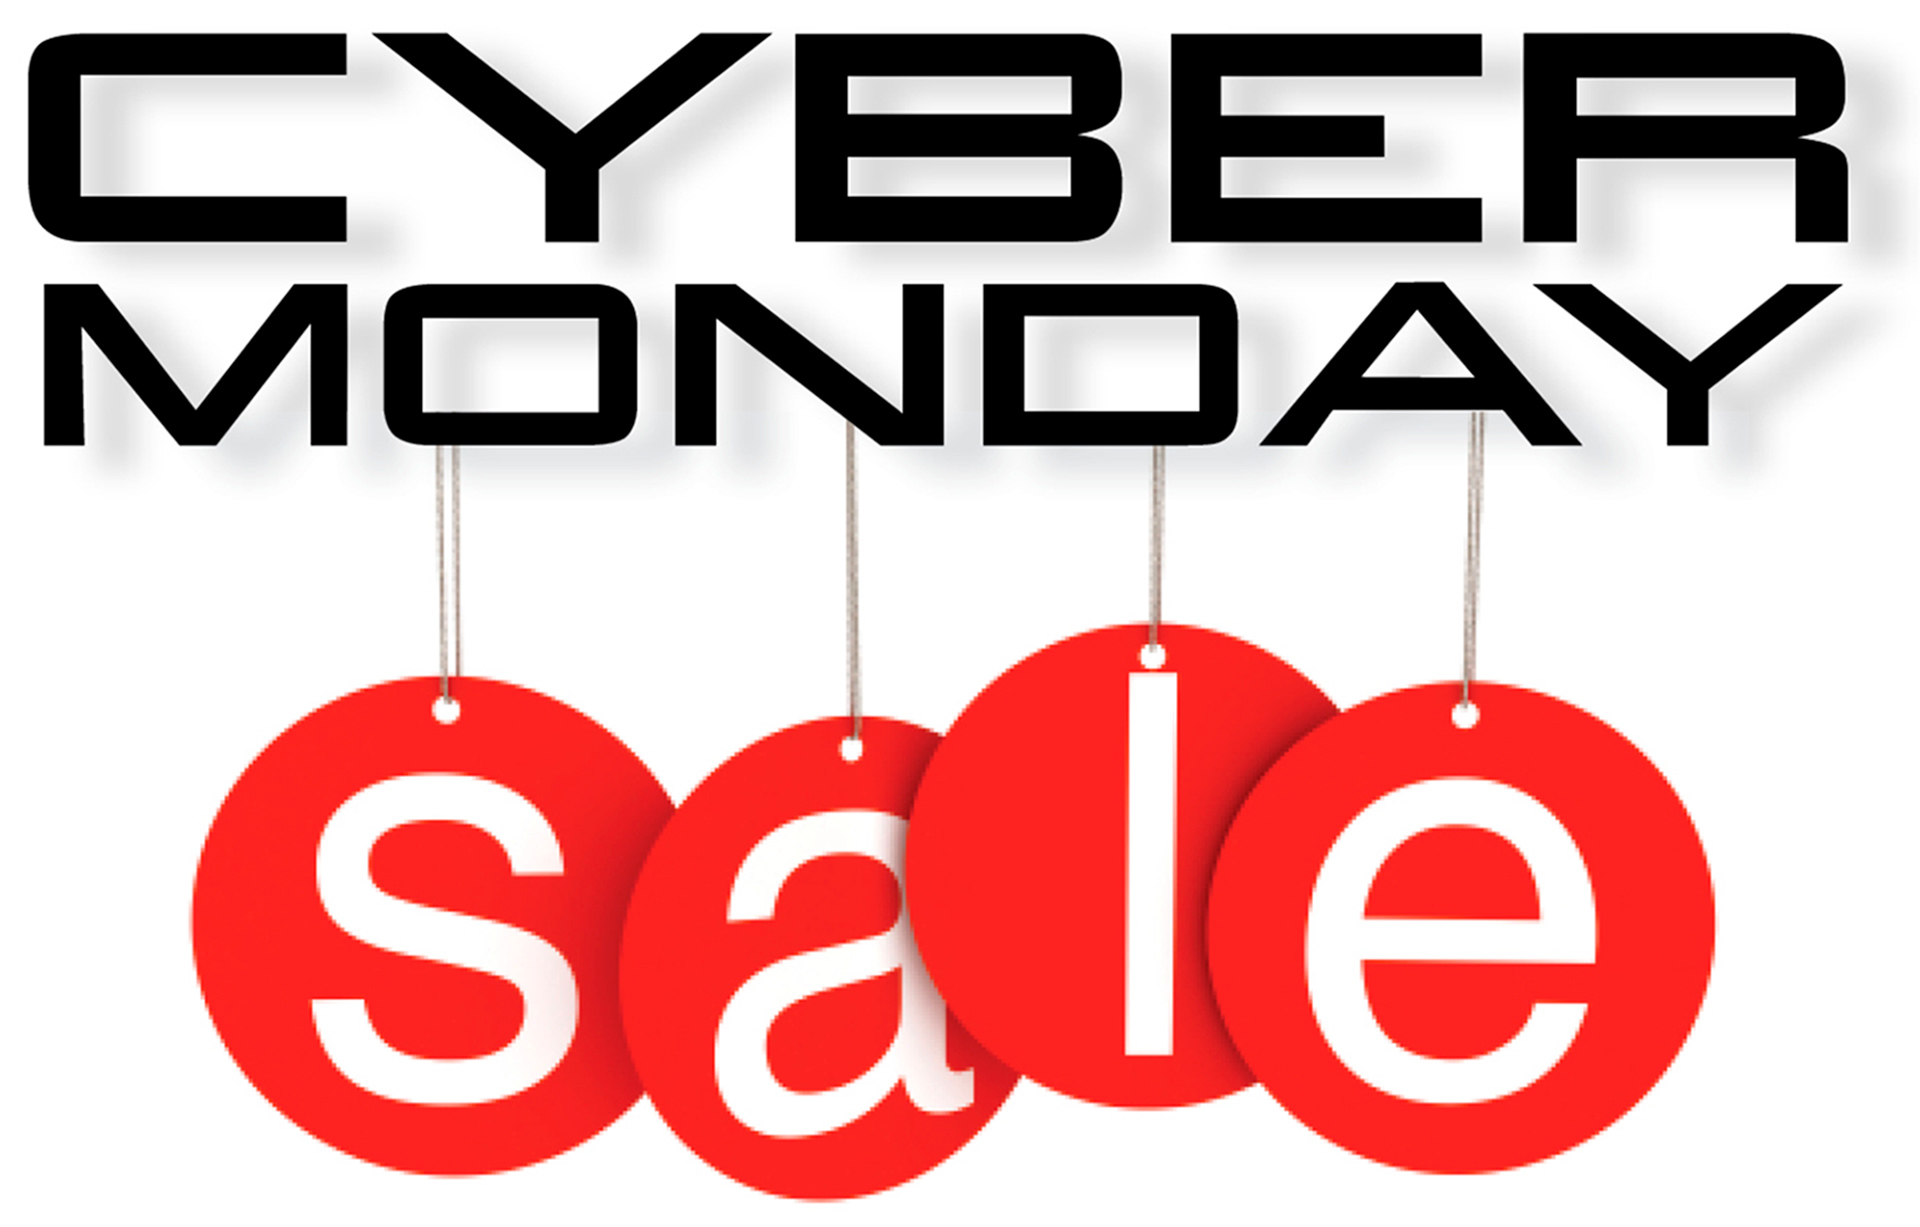 Black Friday, www.arianasoffici.com, cyber monday, deal, bargain, sale, sales, offers, amazon, record